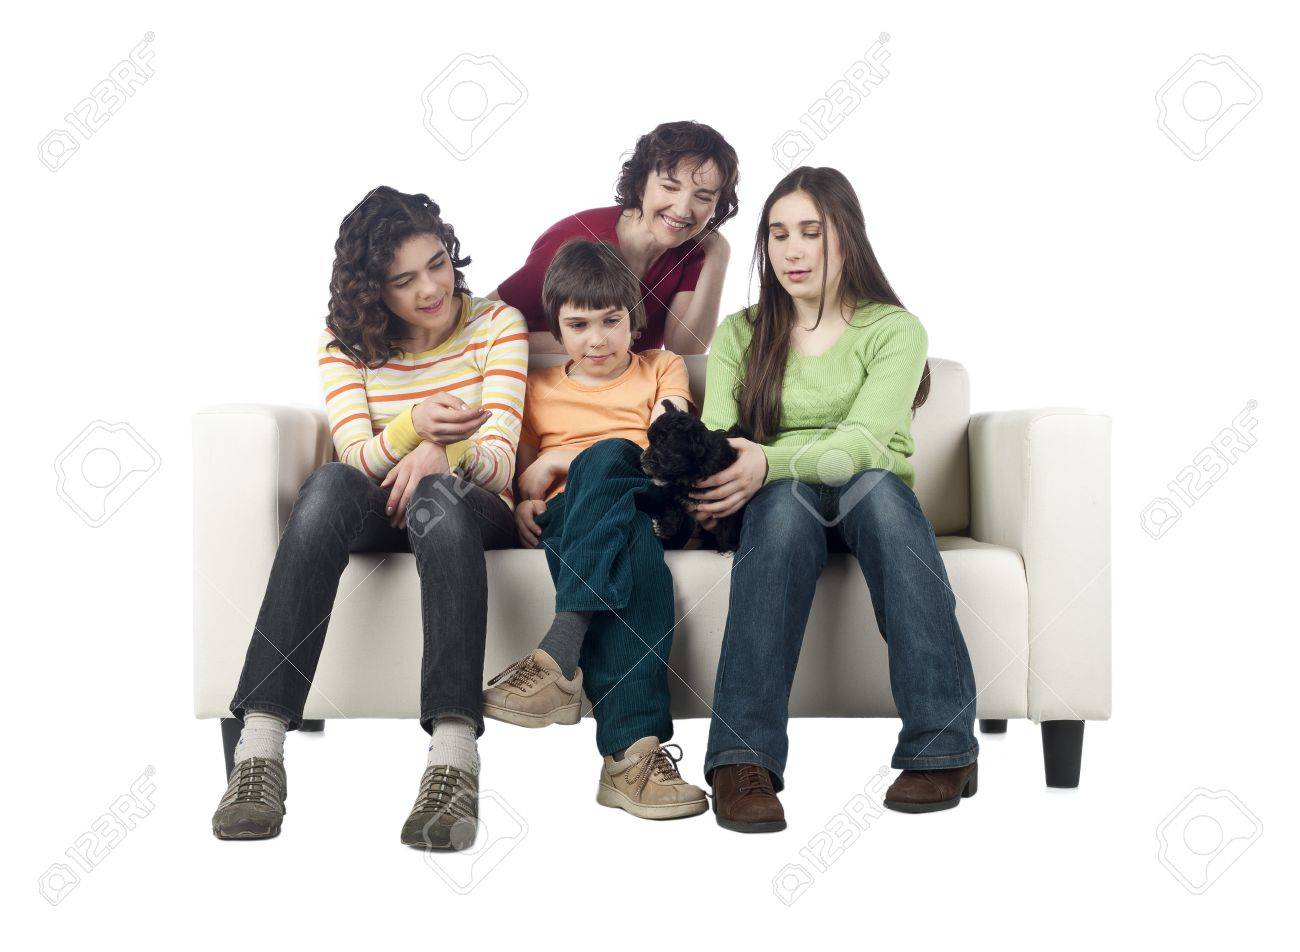 Portrait of a happy family in the living room sofa playing with their pet puppy Stock Photo - 17071110